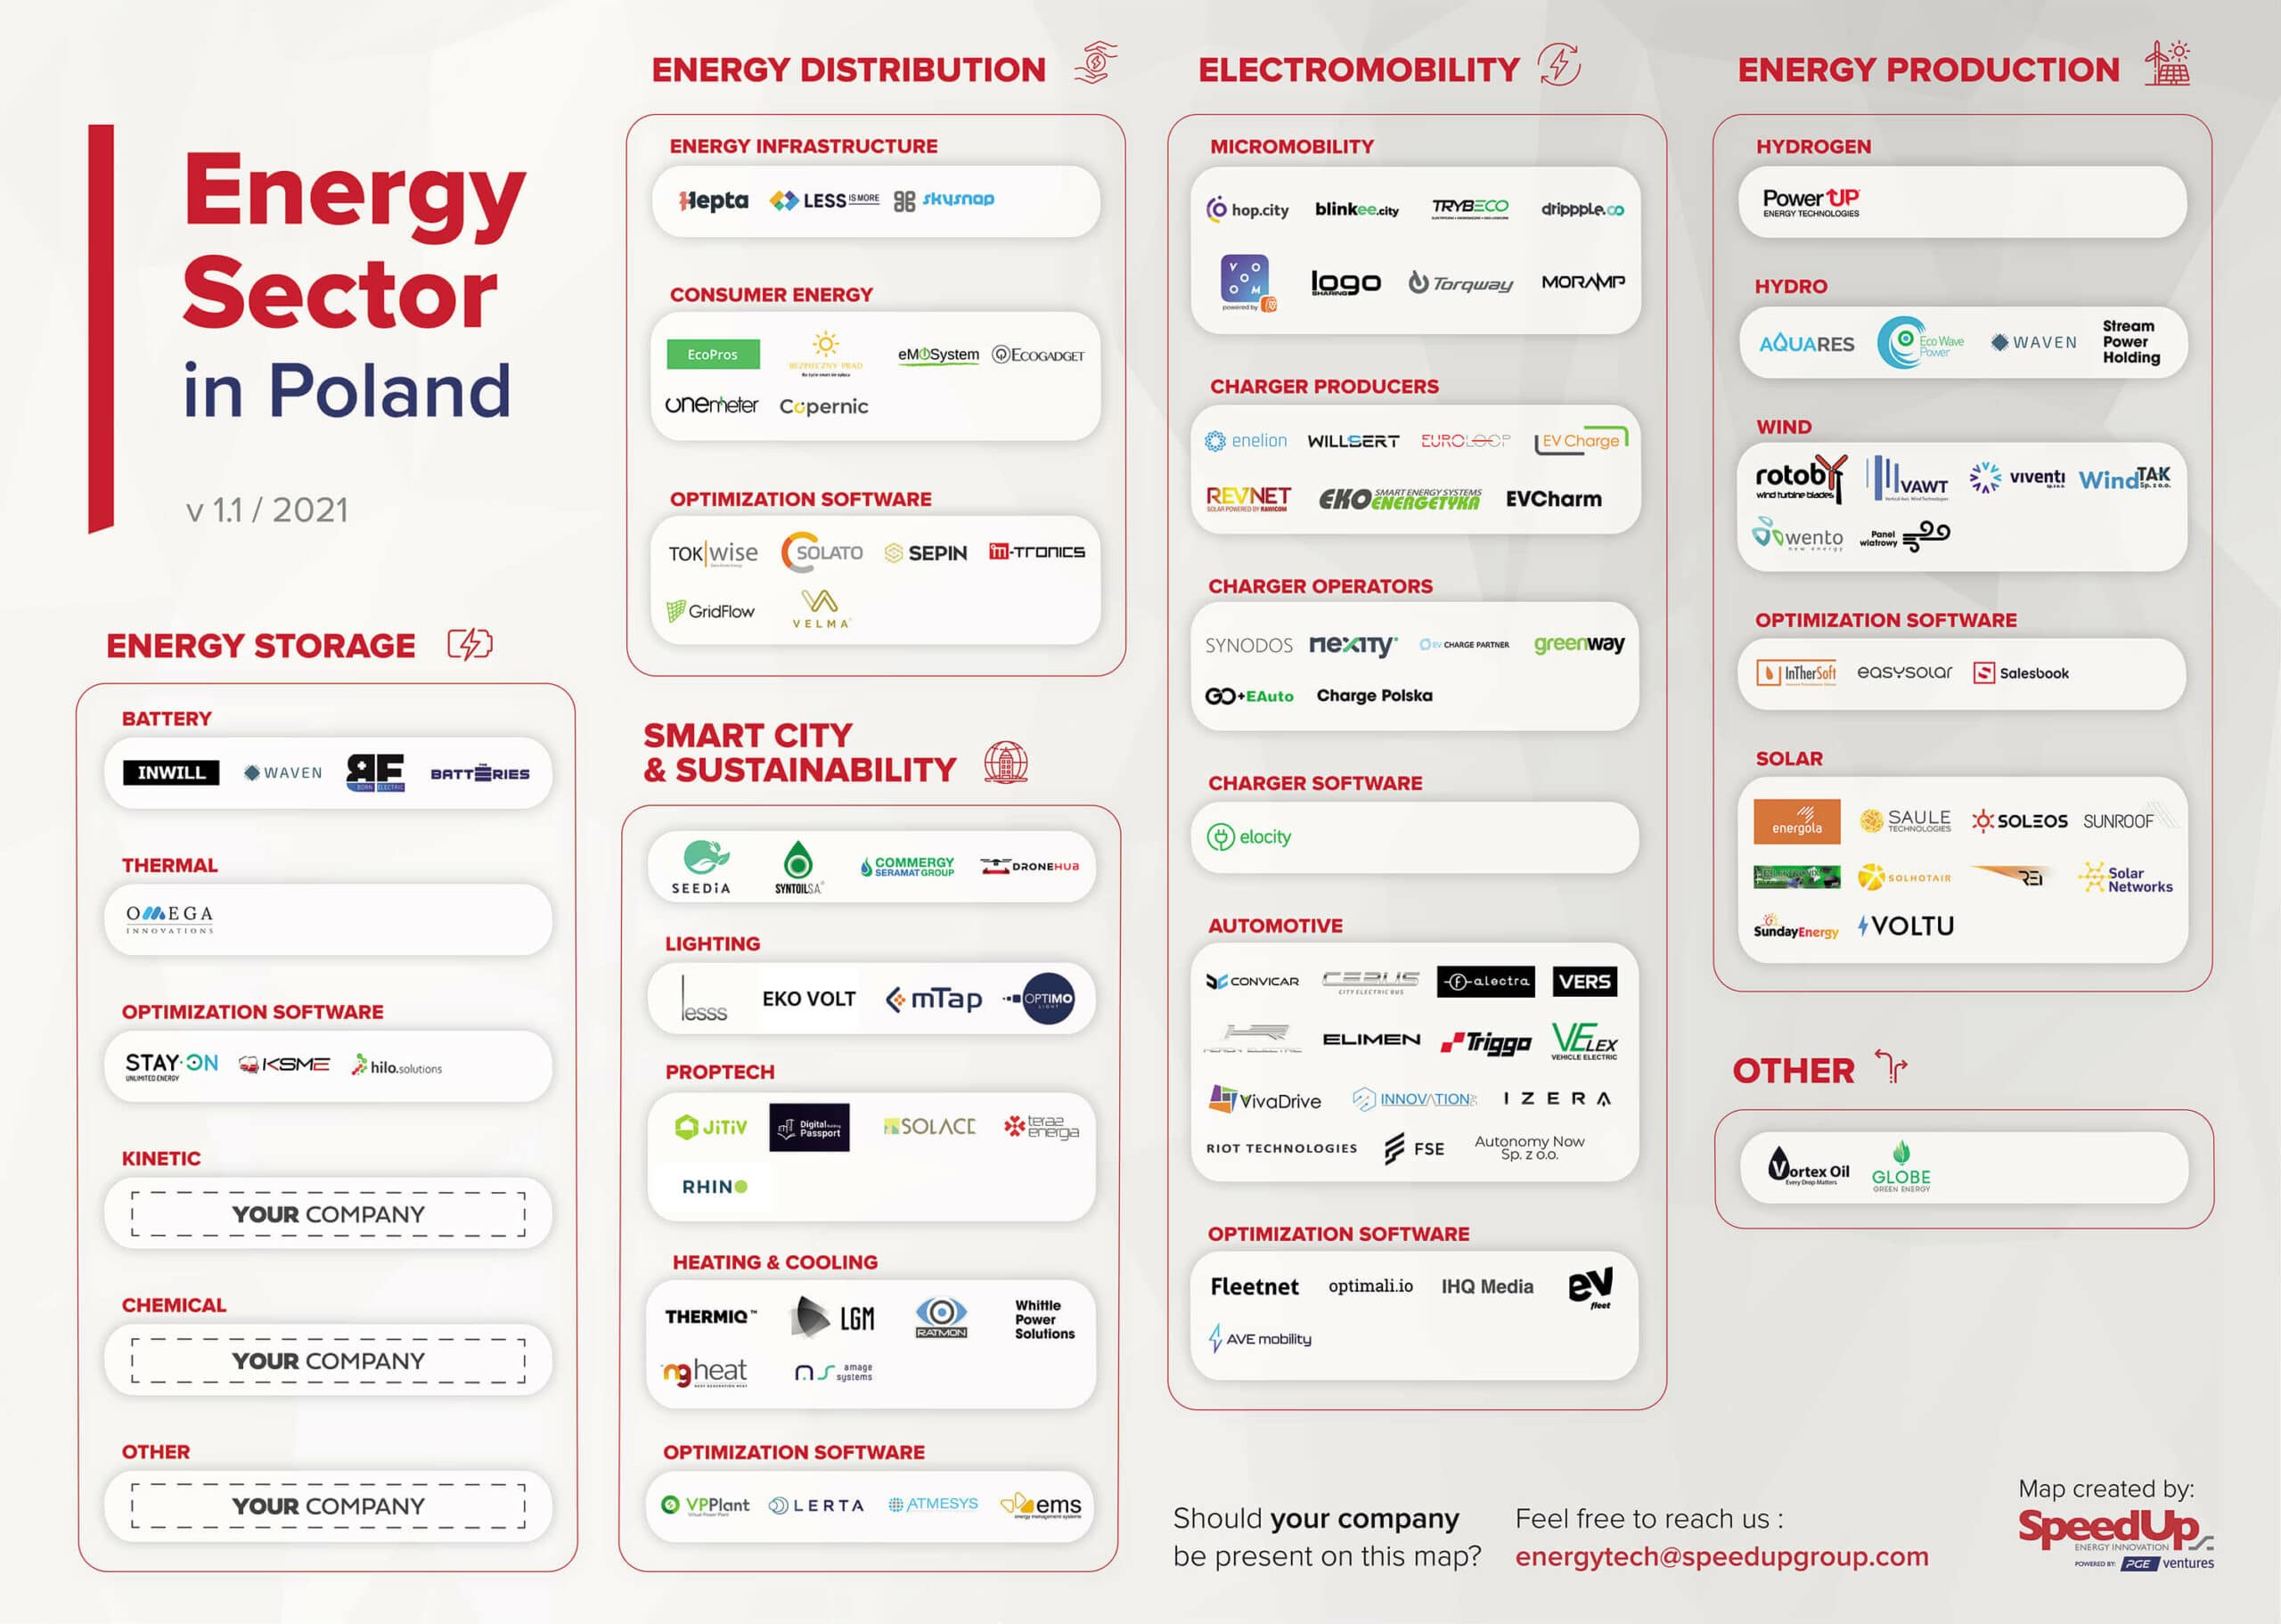 SpeedUp_Energy_Innovation_Enerfy_Tech_MAP